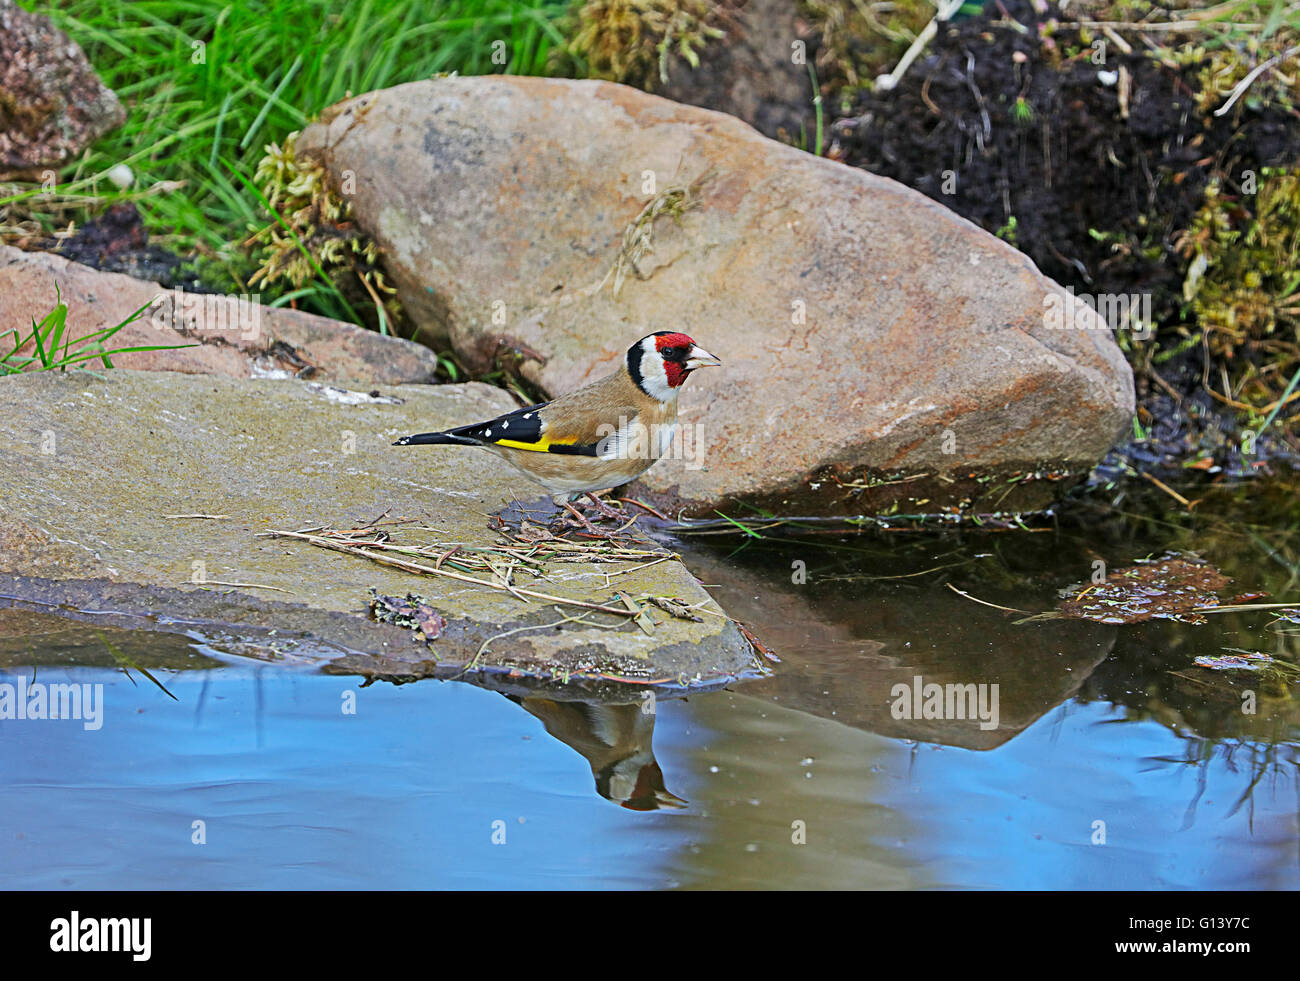 Goldfinch by water - Stock Image